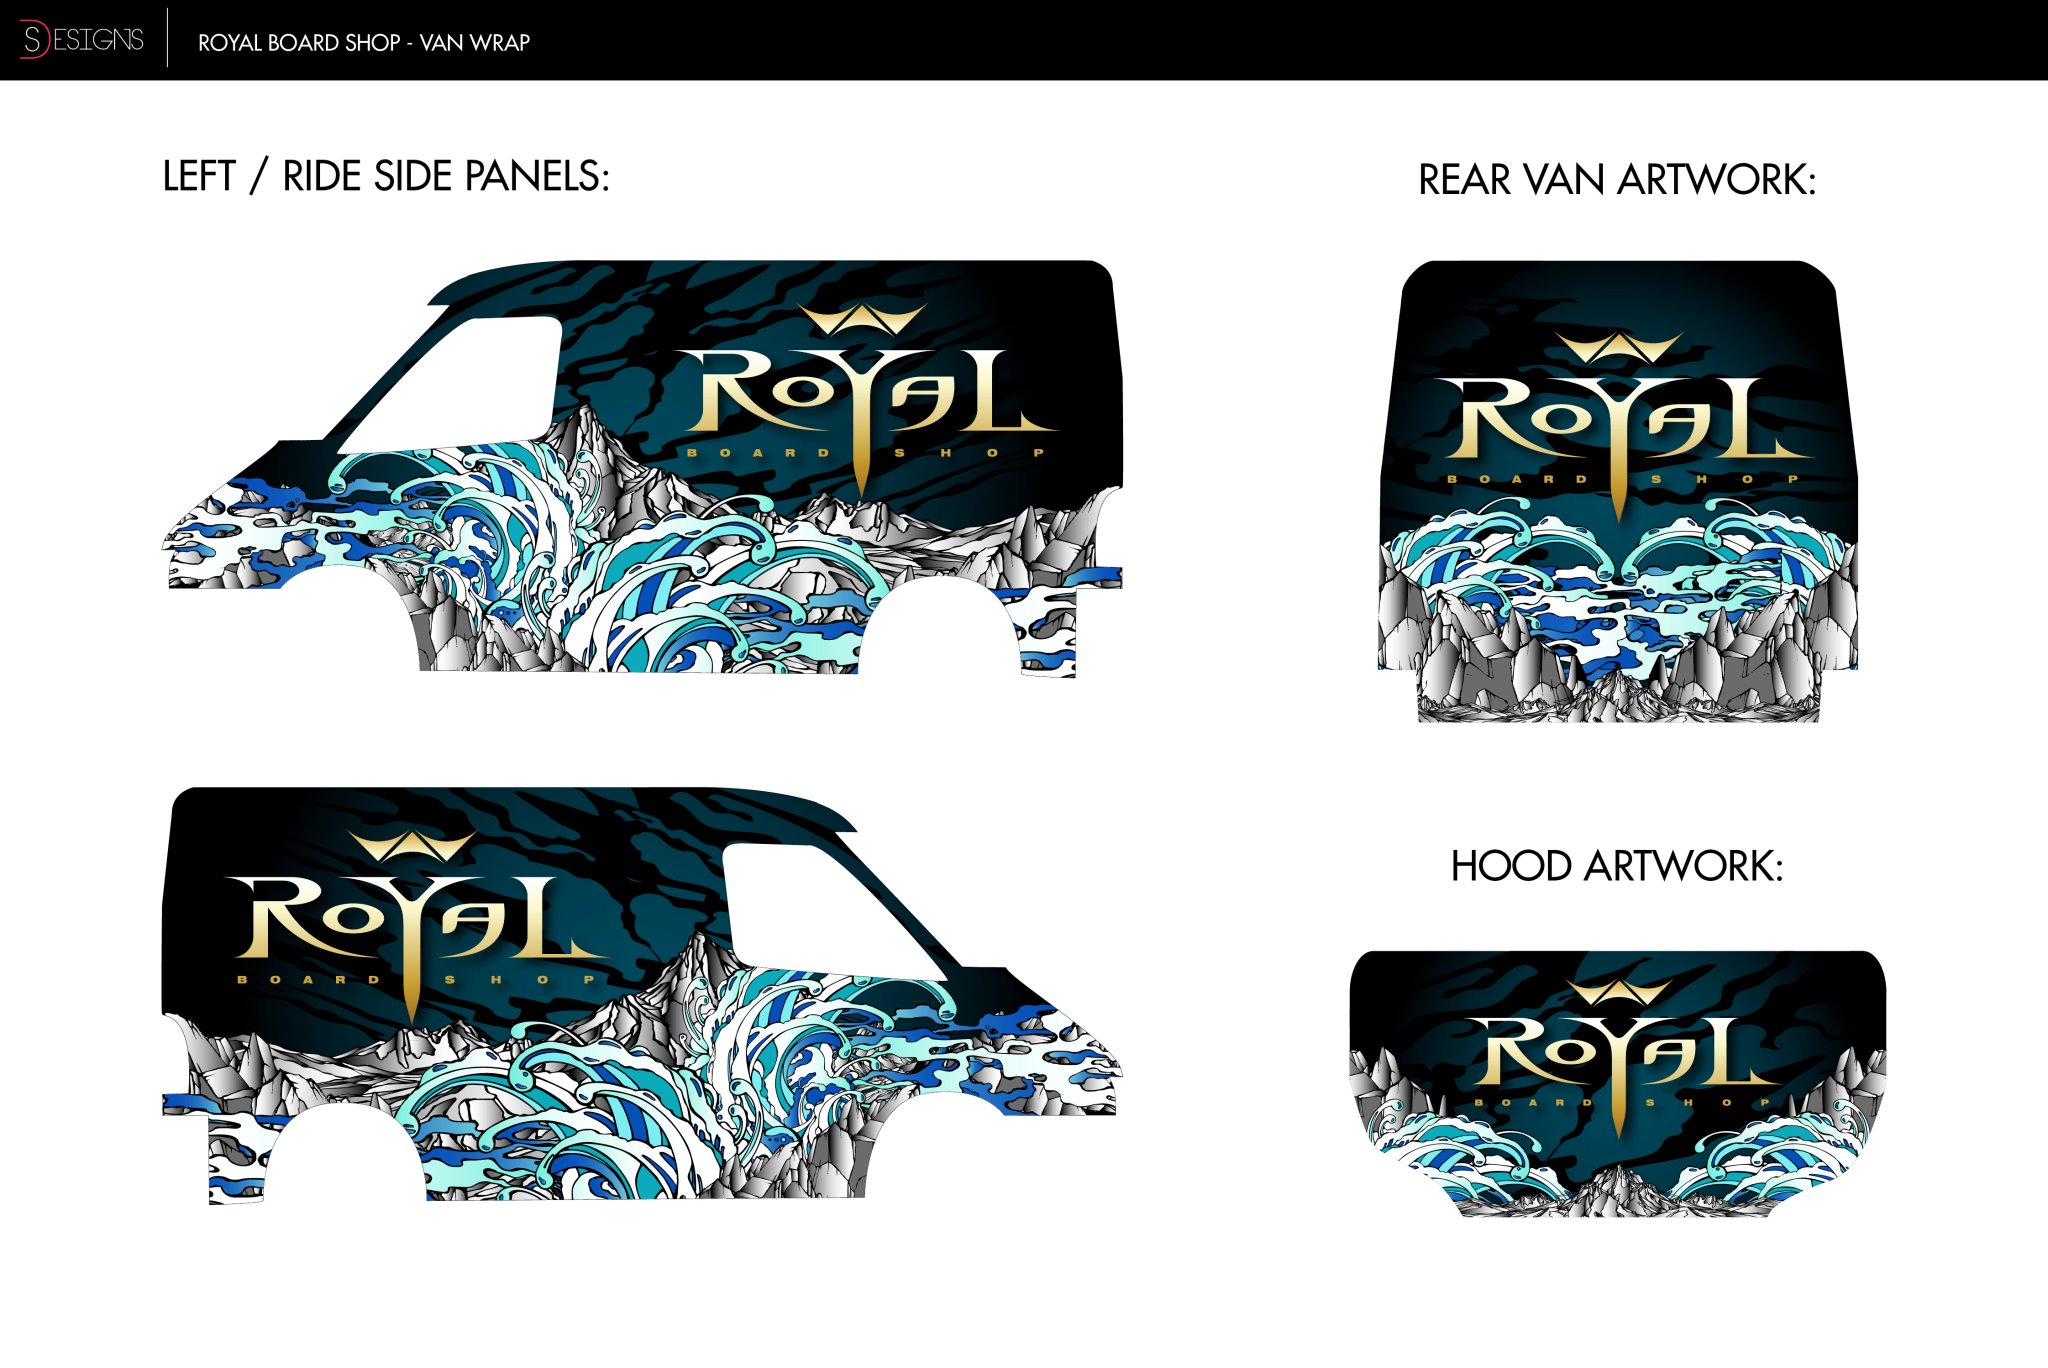 Royal Board Shop - Vehicle Wrap